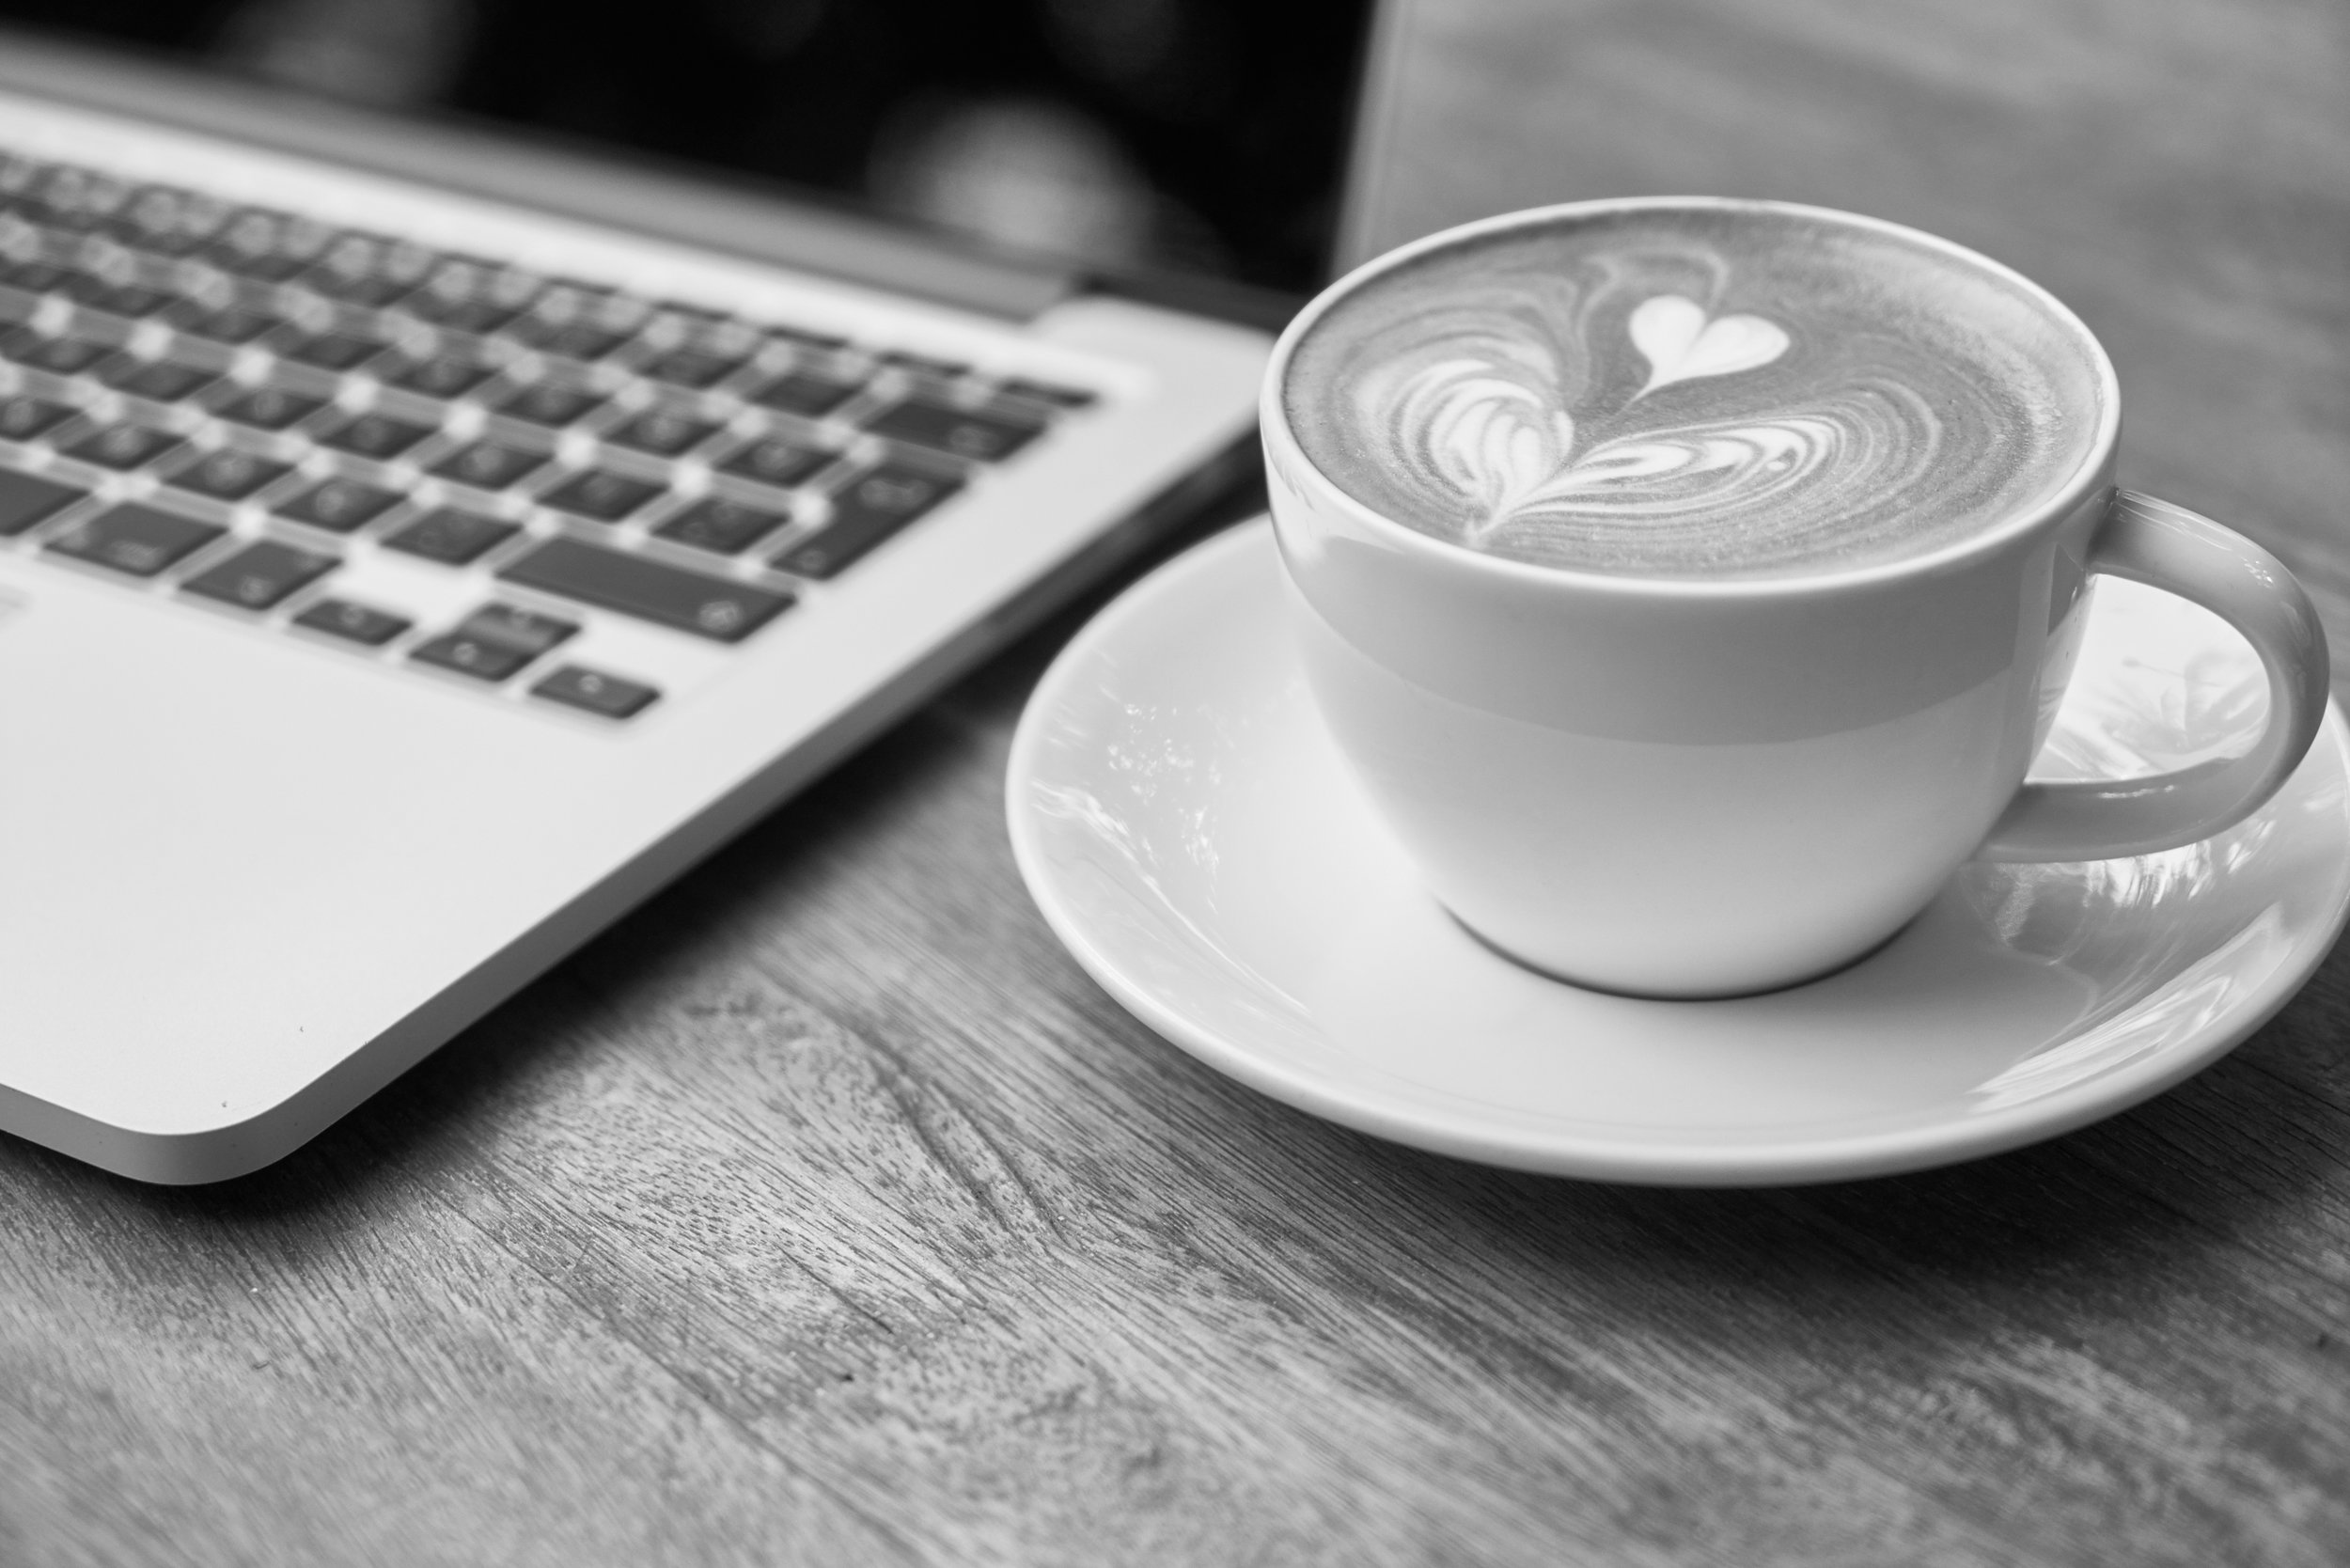 A latte and a Macbook sit on a wooden table